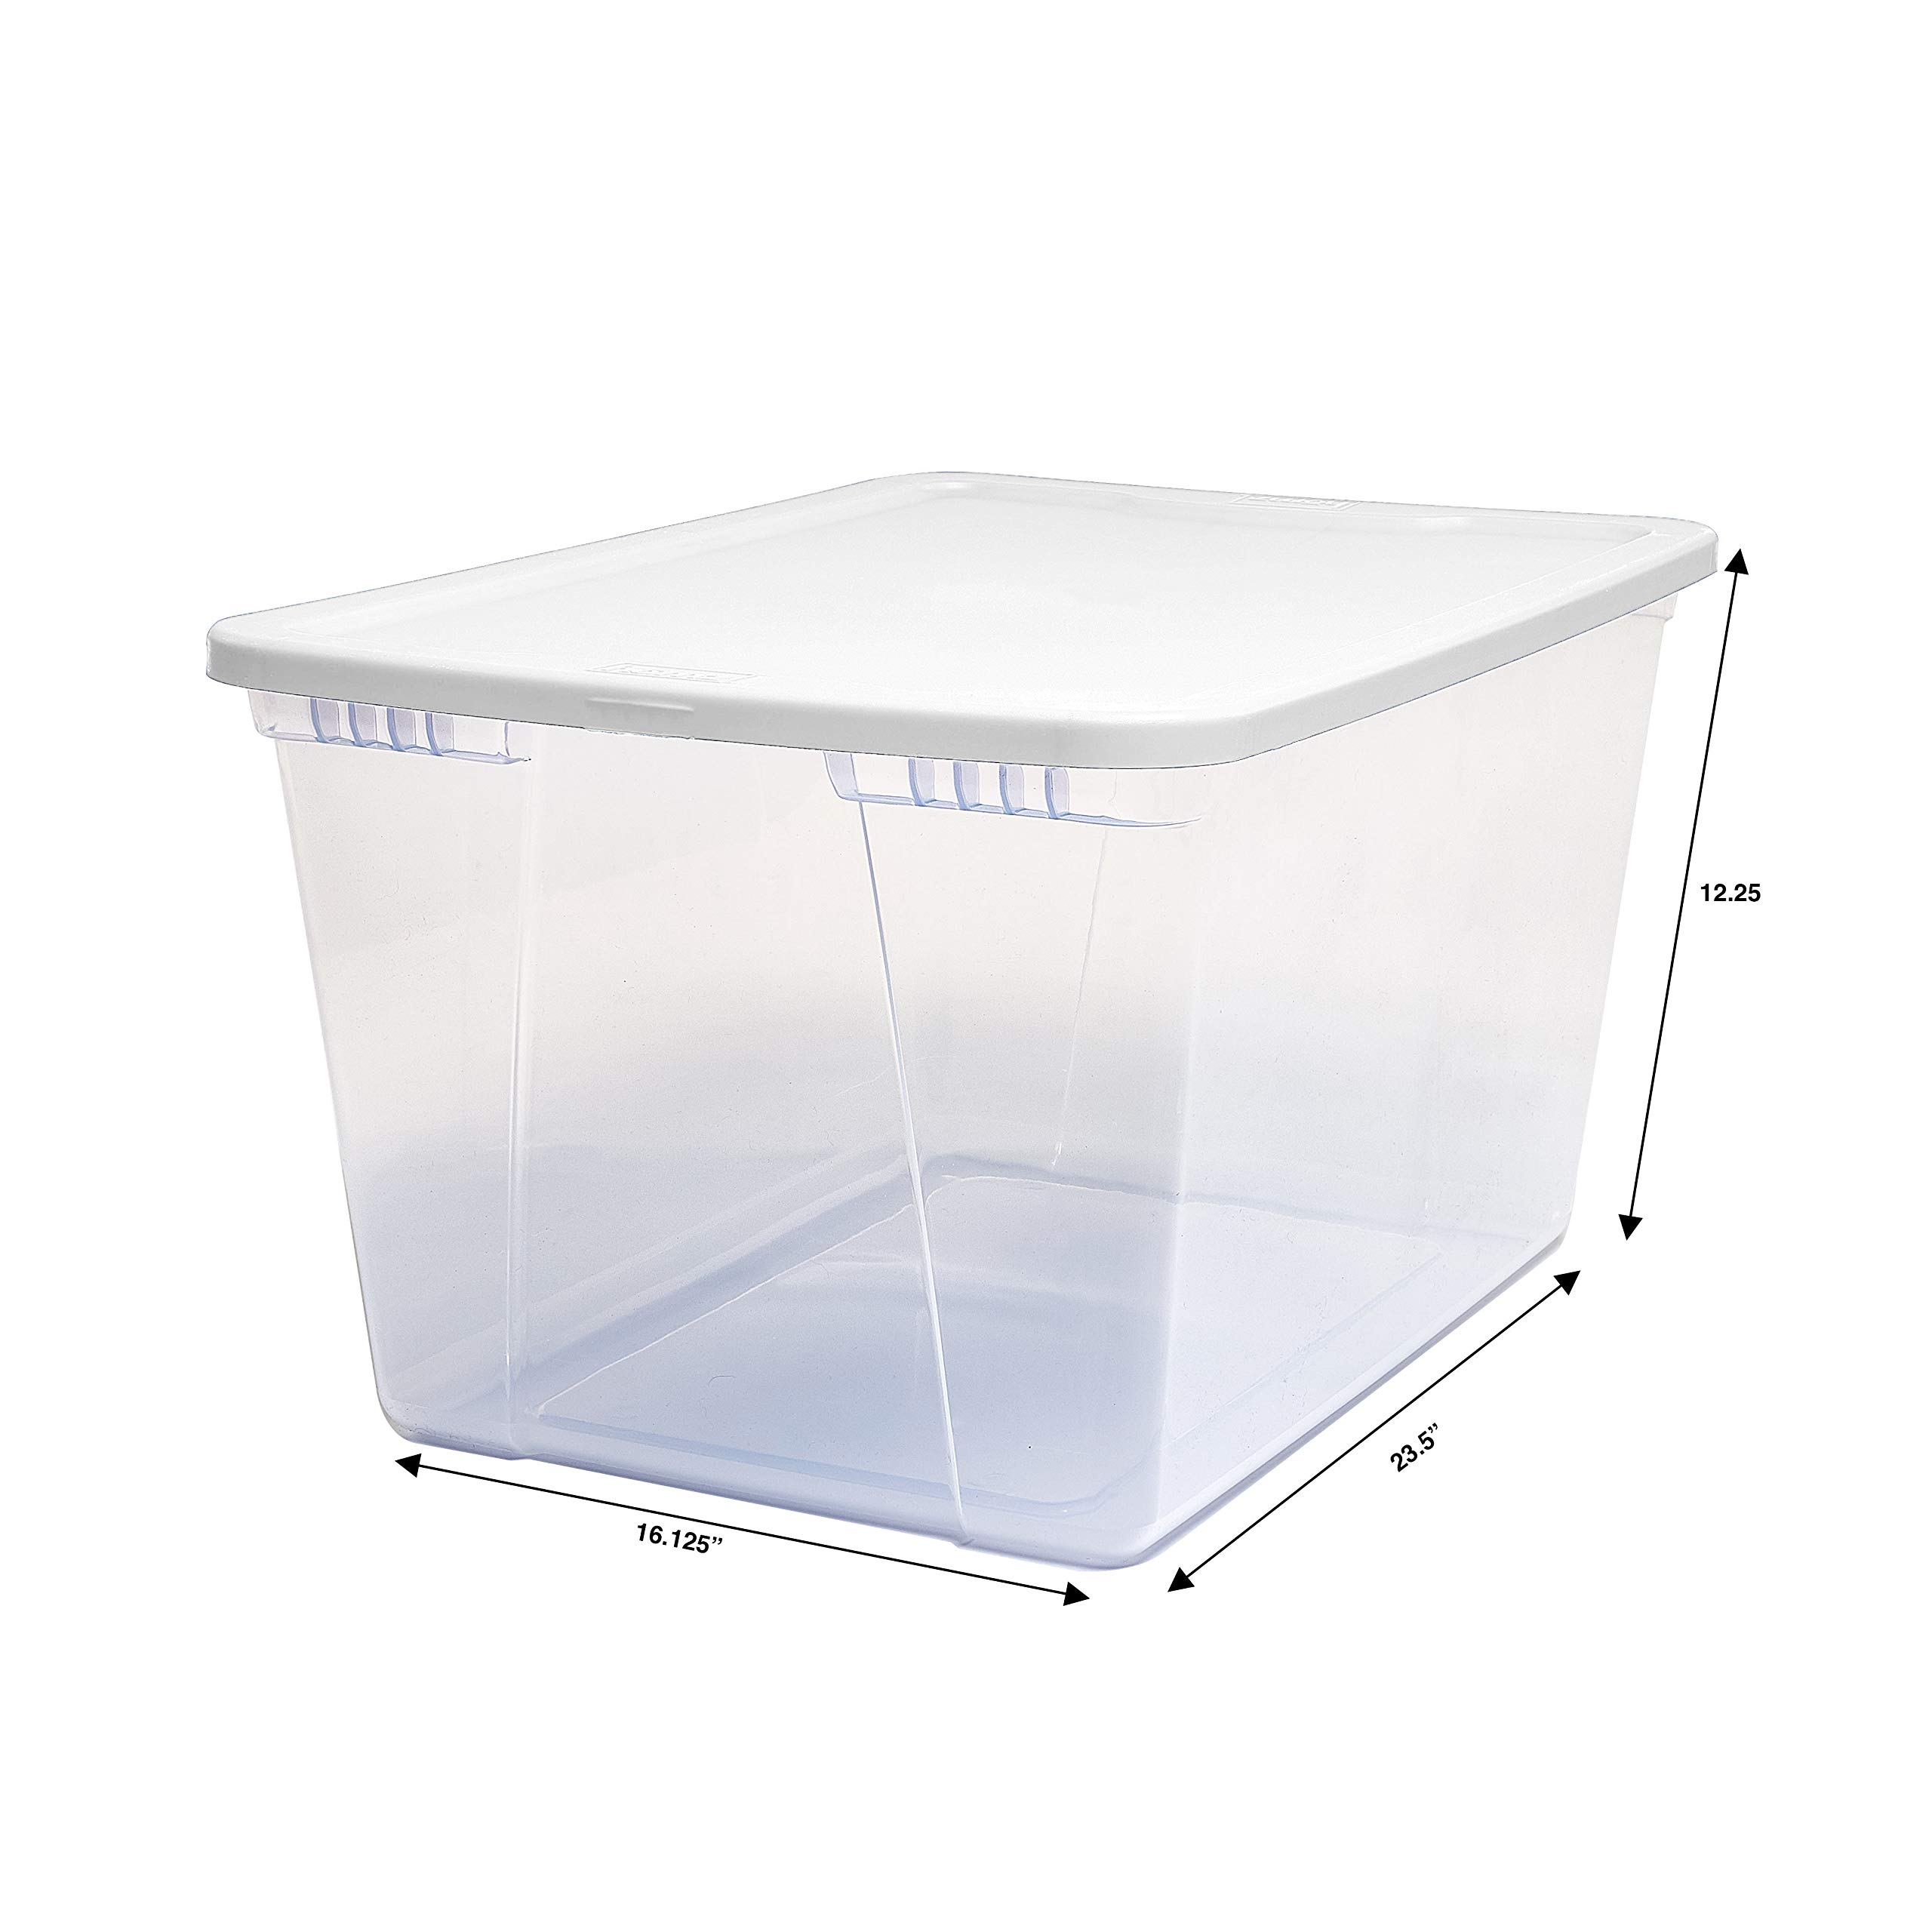 Homz 56 Quart Snaplock Container Clear Storage Bin with Lid, 4 Pack, White, 4 Sets by Homz (Image #6)